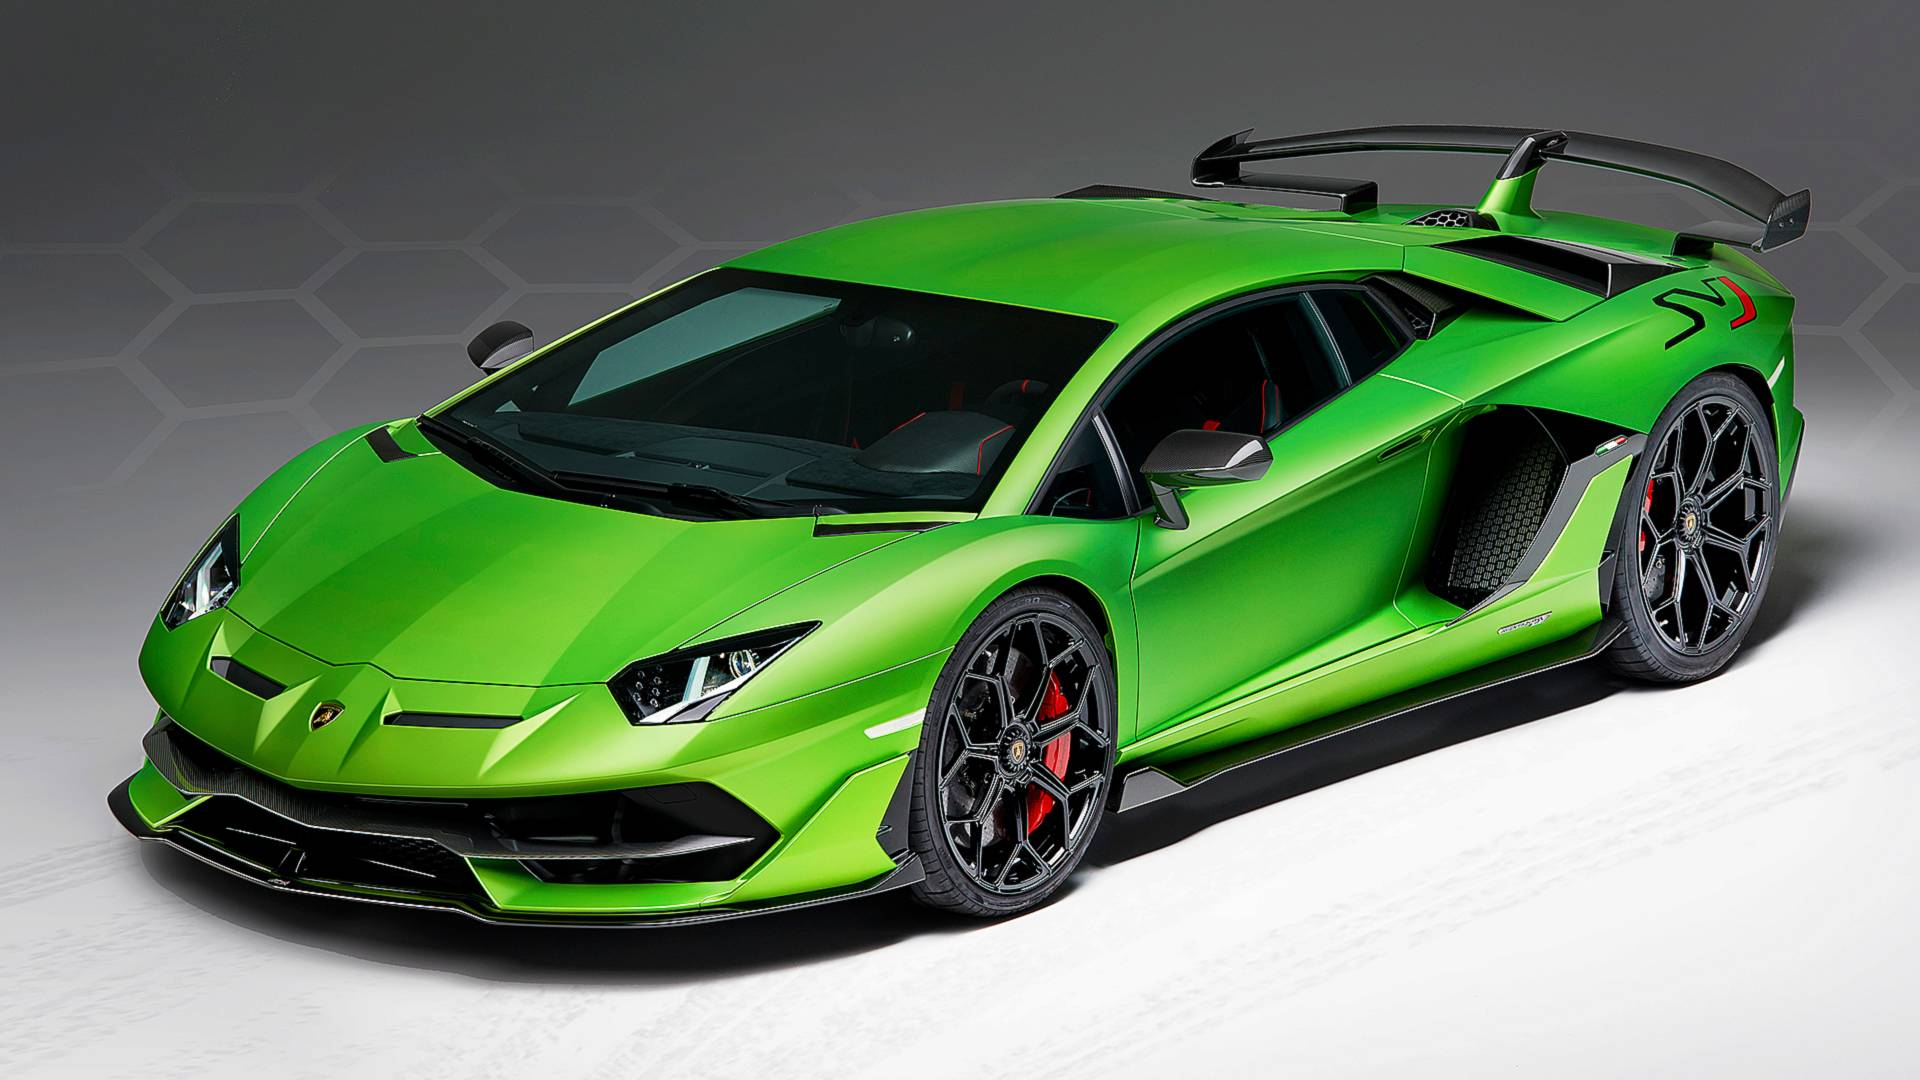 Lamborghini Aventador Svj Revealed In Dealer Photo Shows